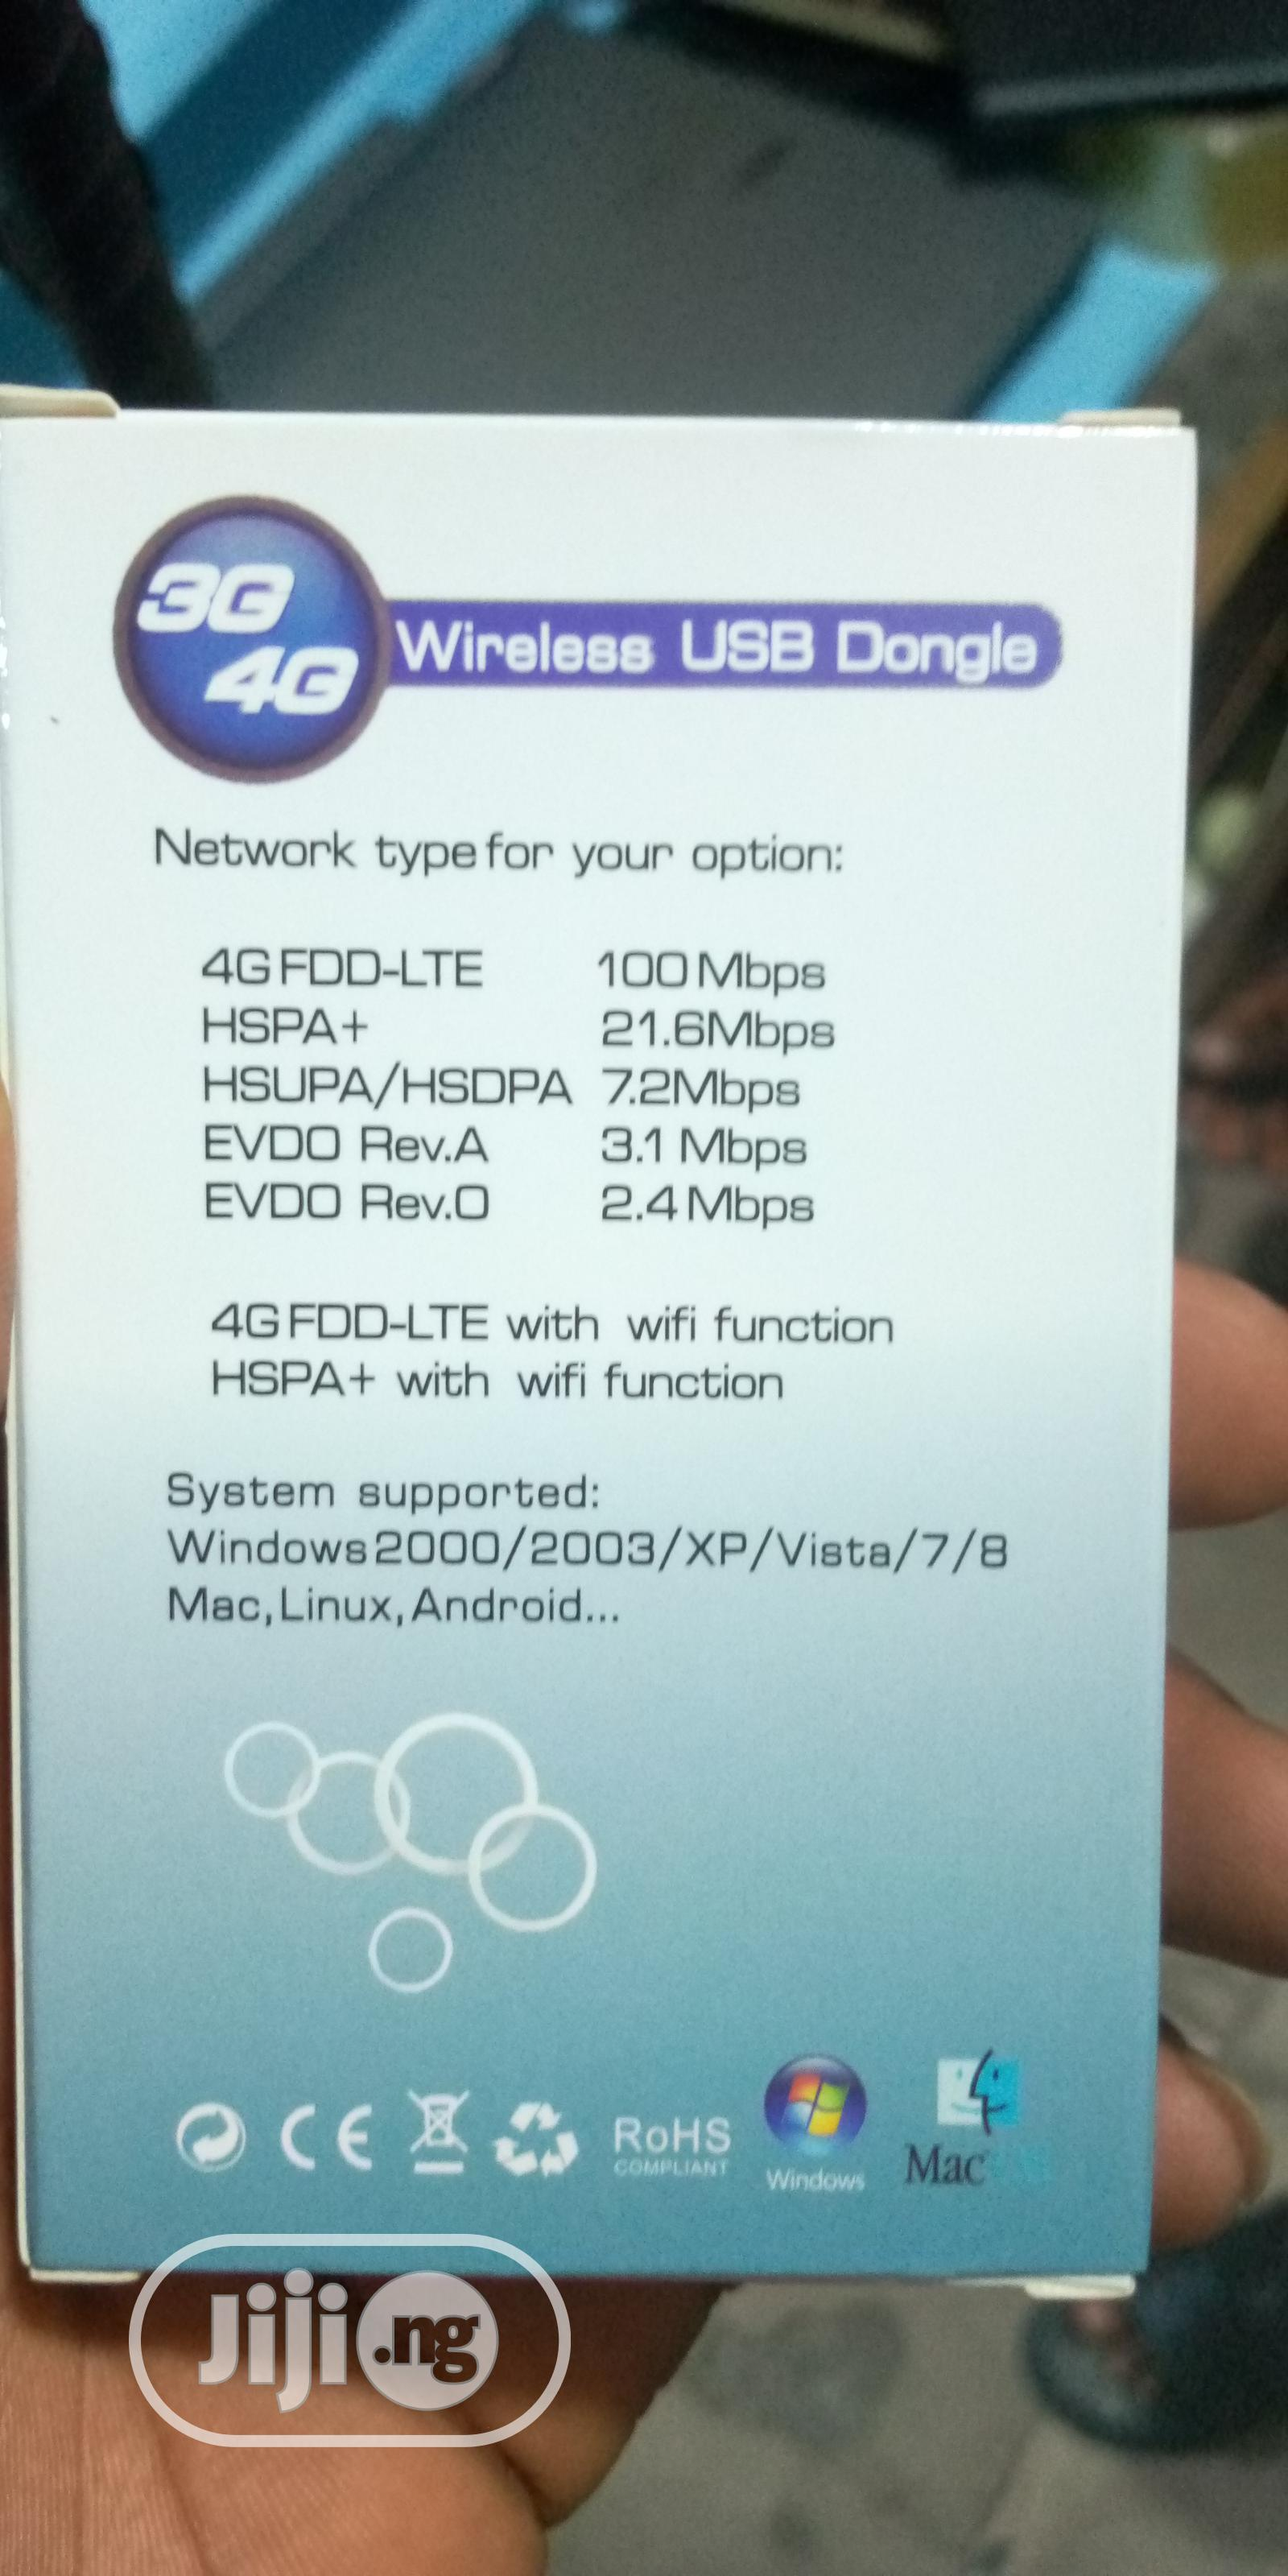 Universal Modem 7.2mbps 3G-4G Mobile Broadband USB Dongle | Networking Products for sale in Ikeja, Lagos State, Nigeria